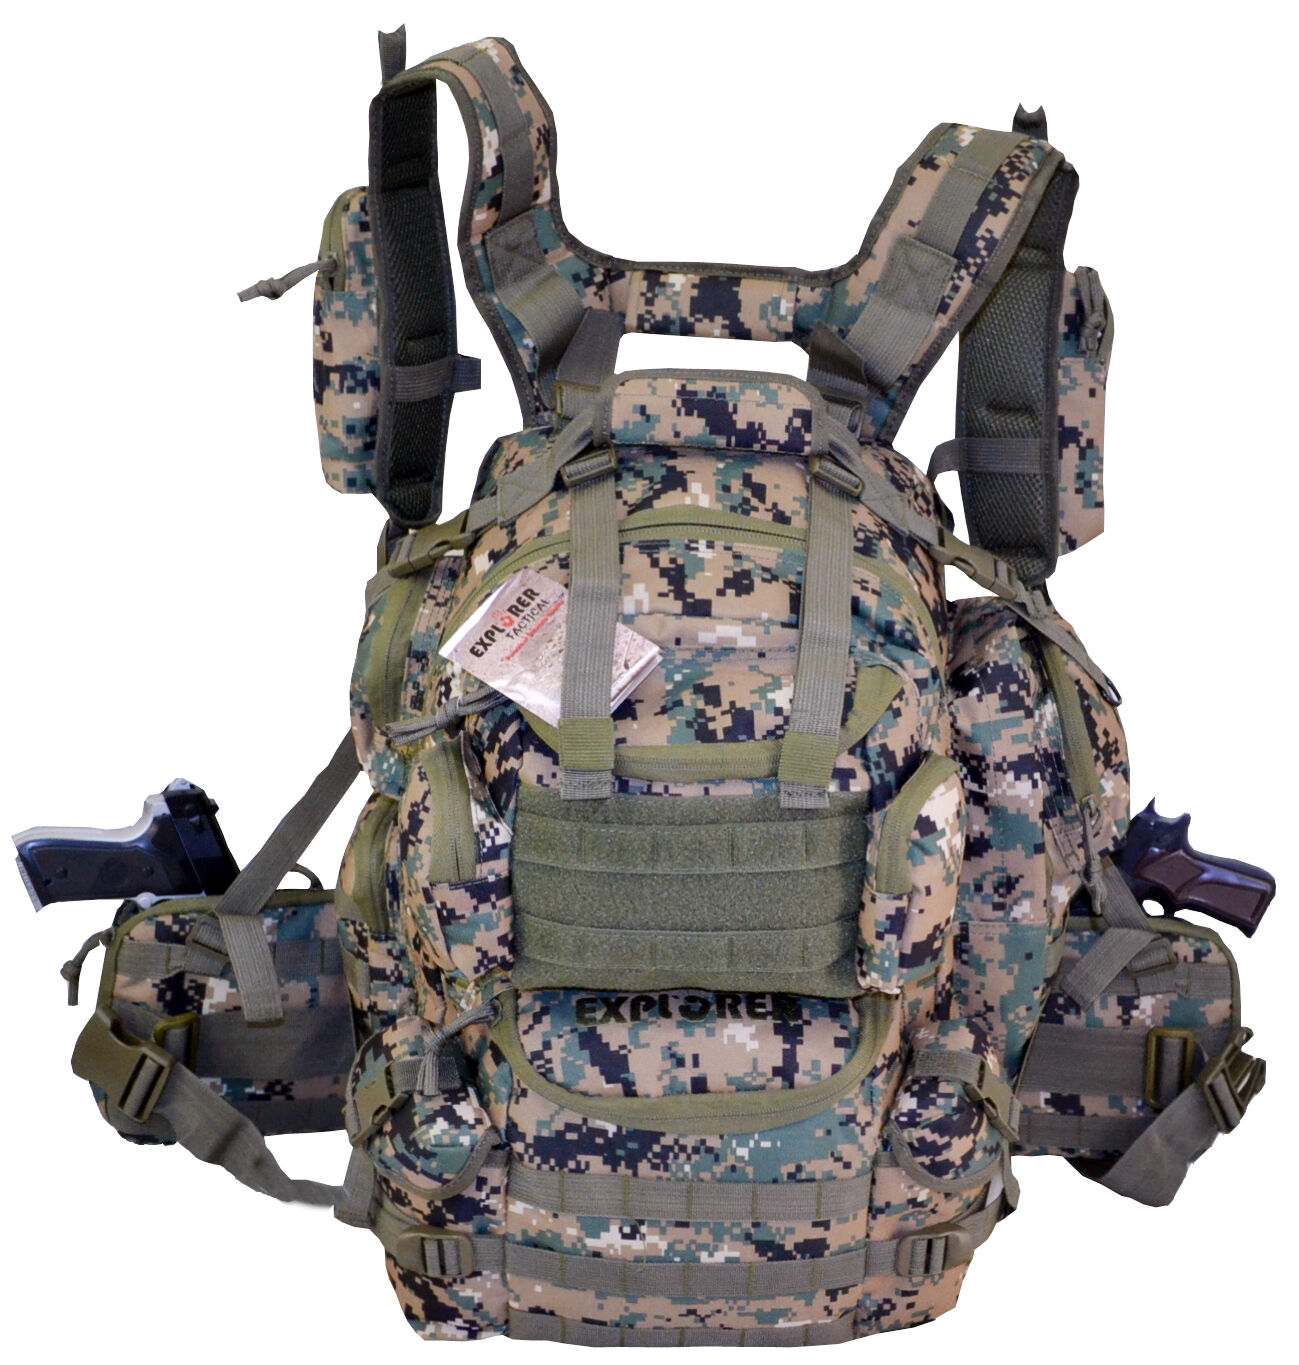 Ultimate Deluxe Tactical Assault 3-Day 72 Hours Survival Pack Backpack WD Farbe